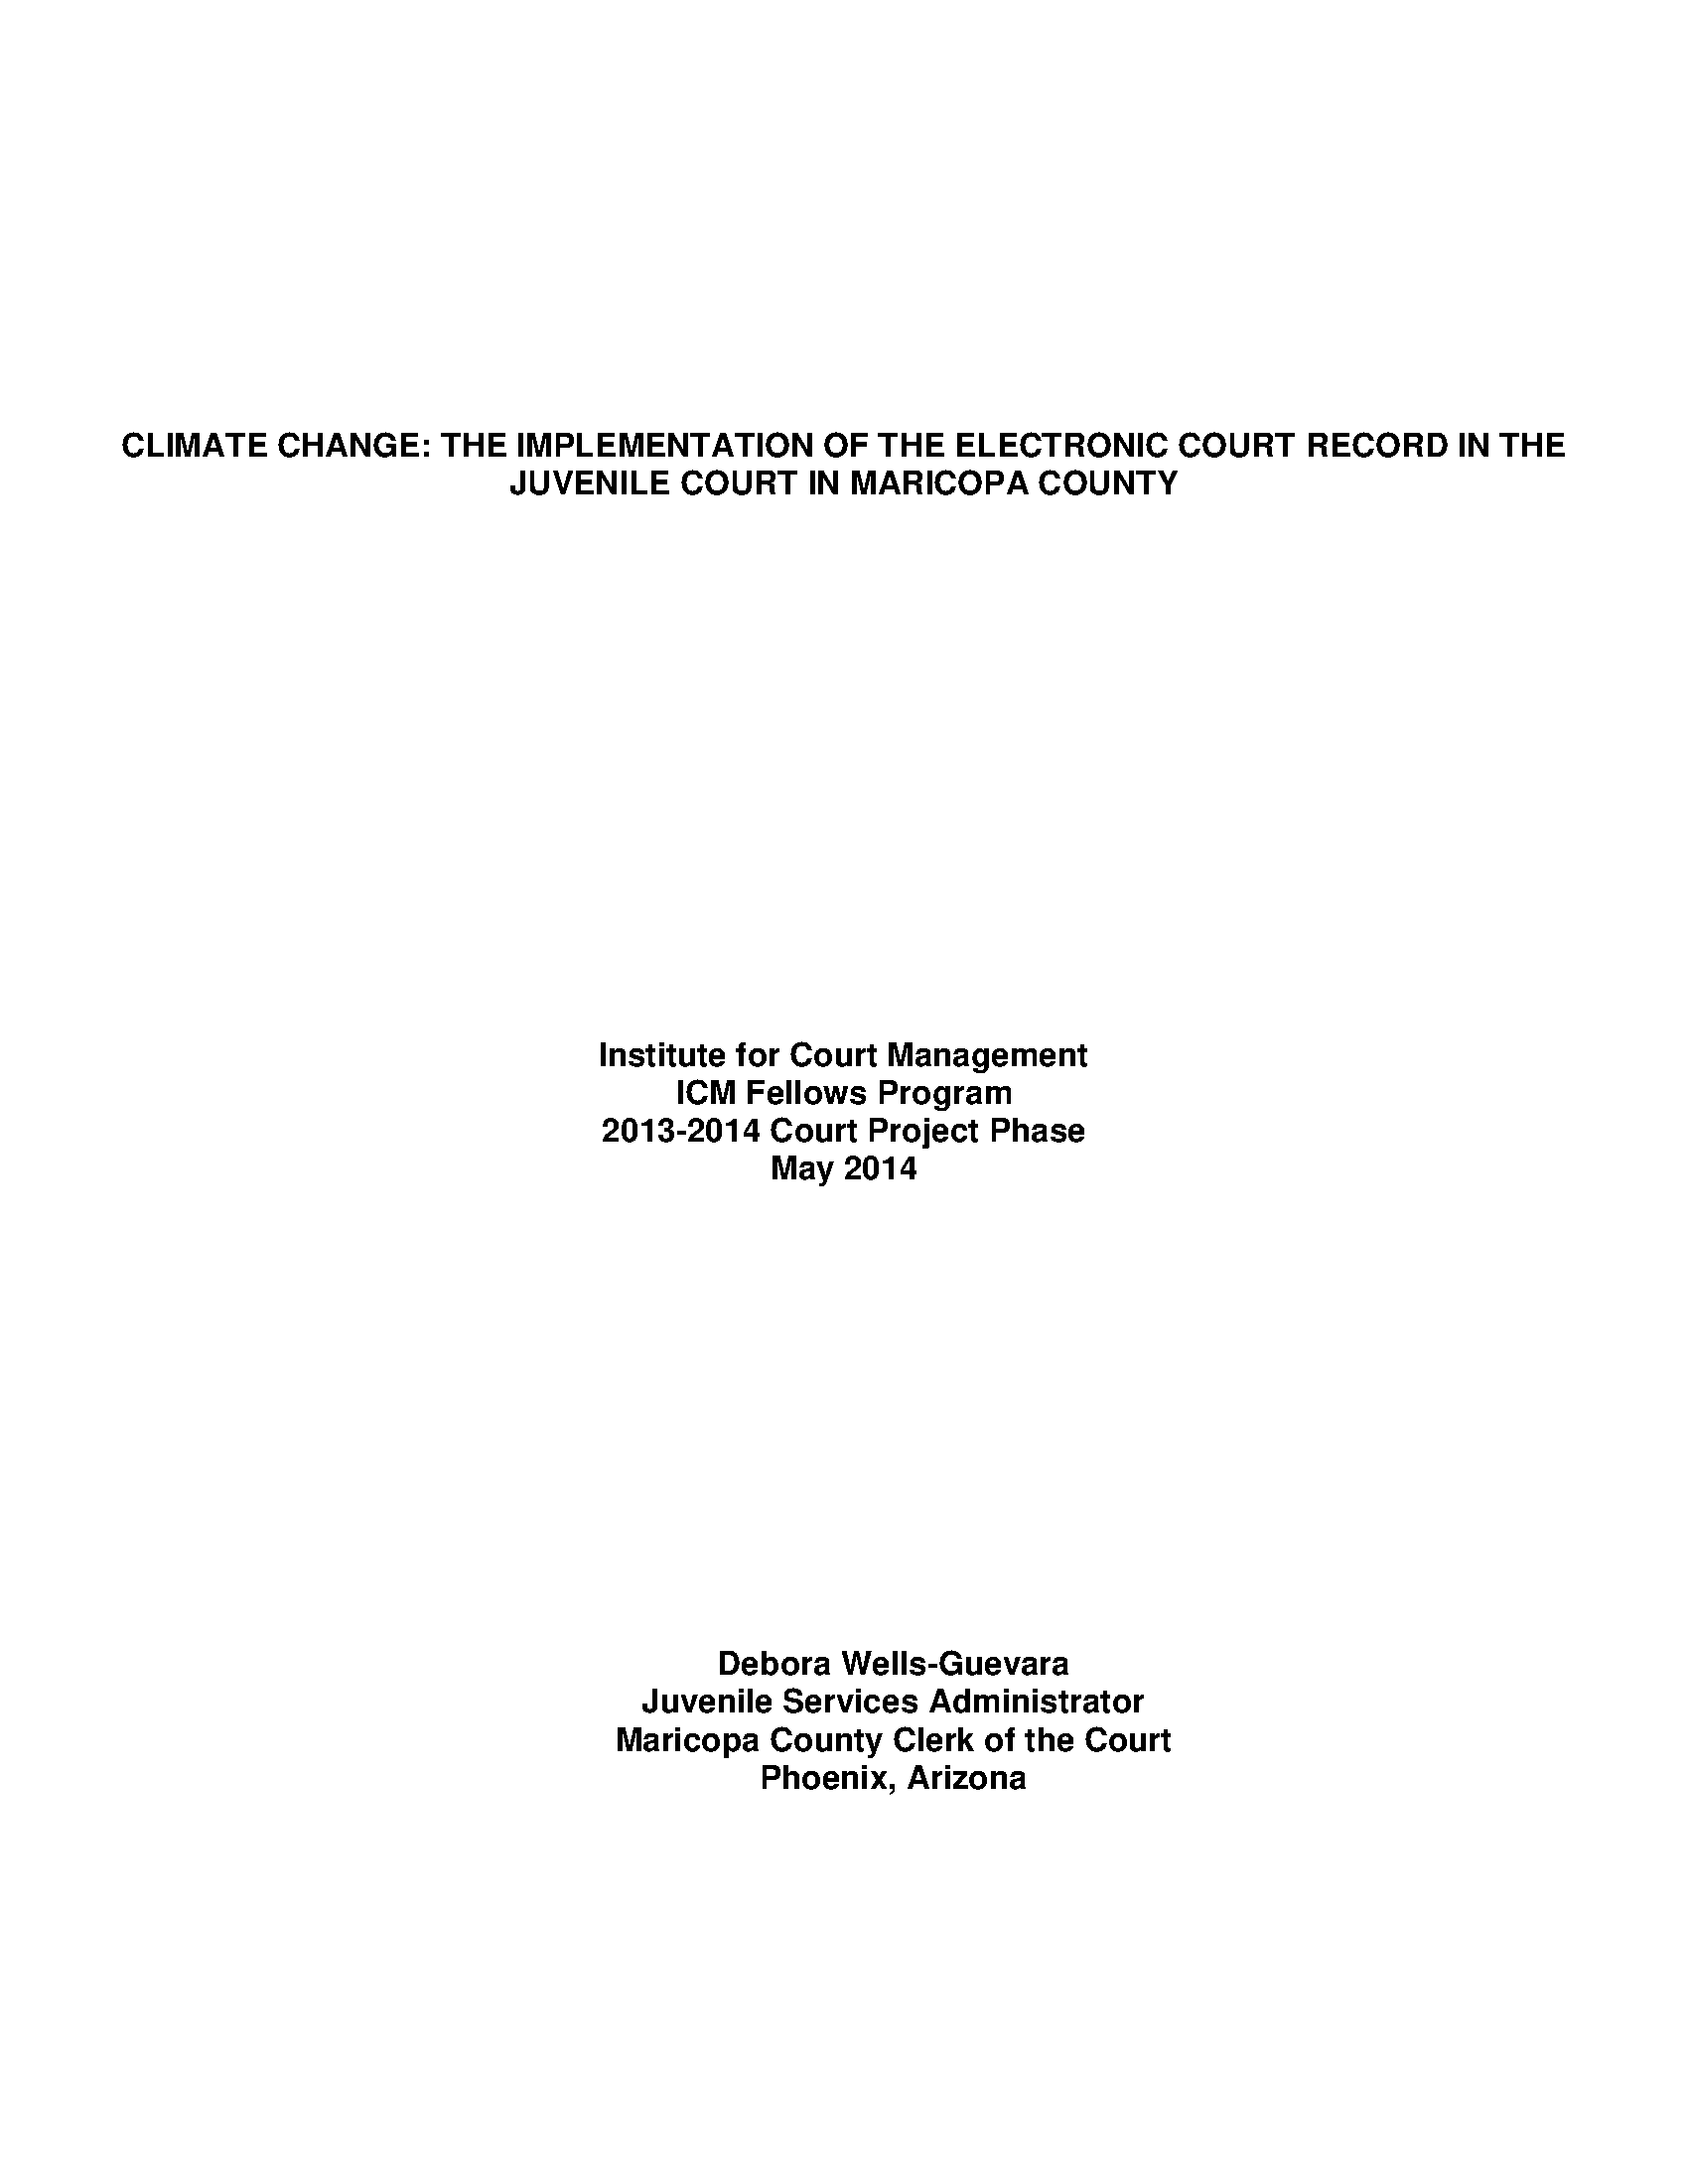 Climate Change: The Implementation of the Electronic Court